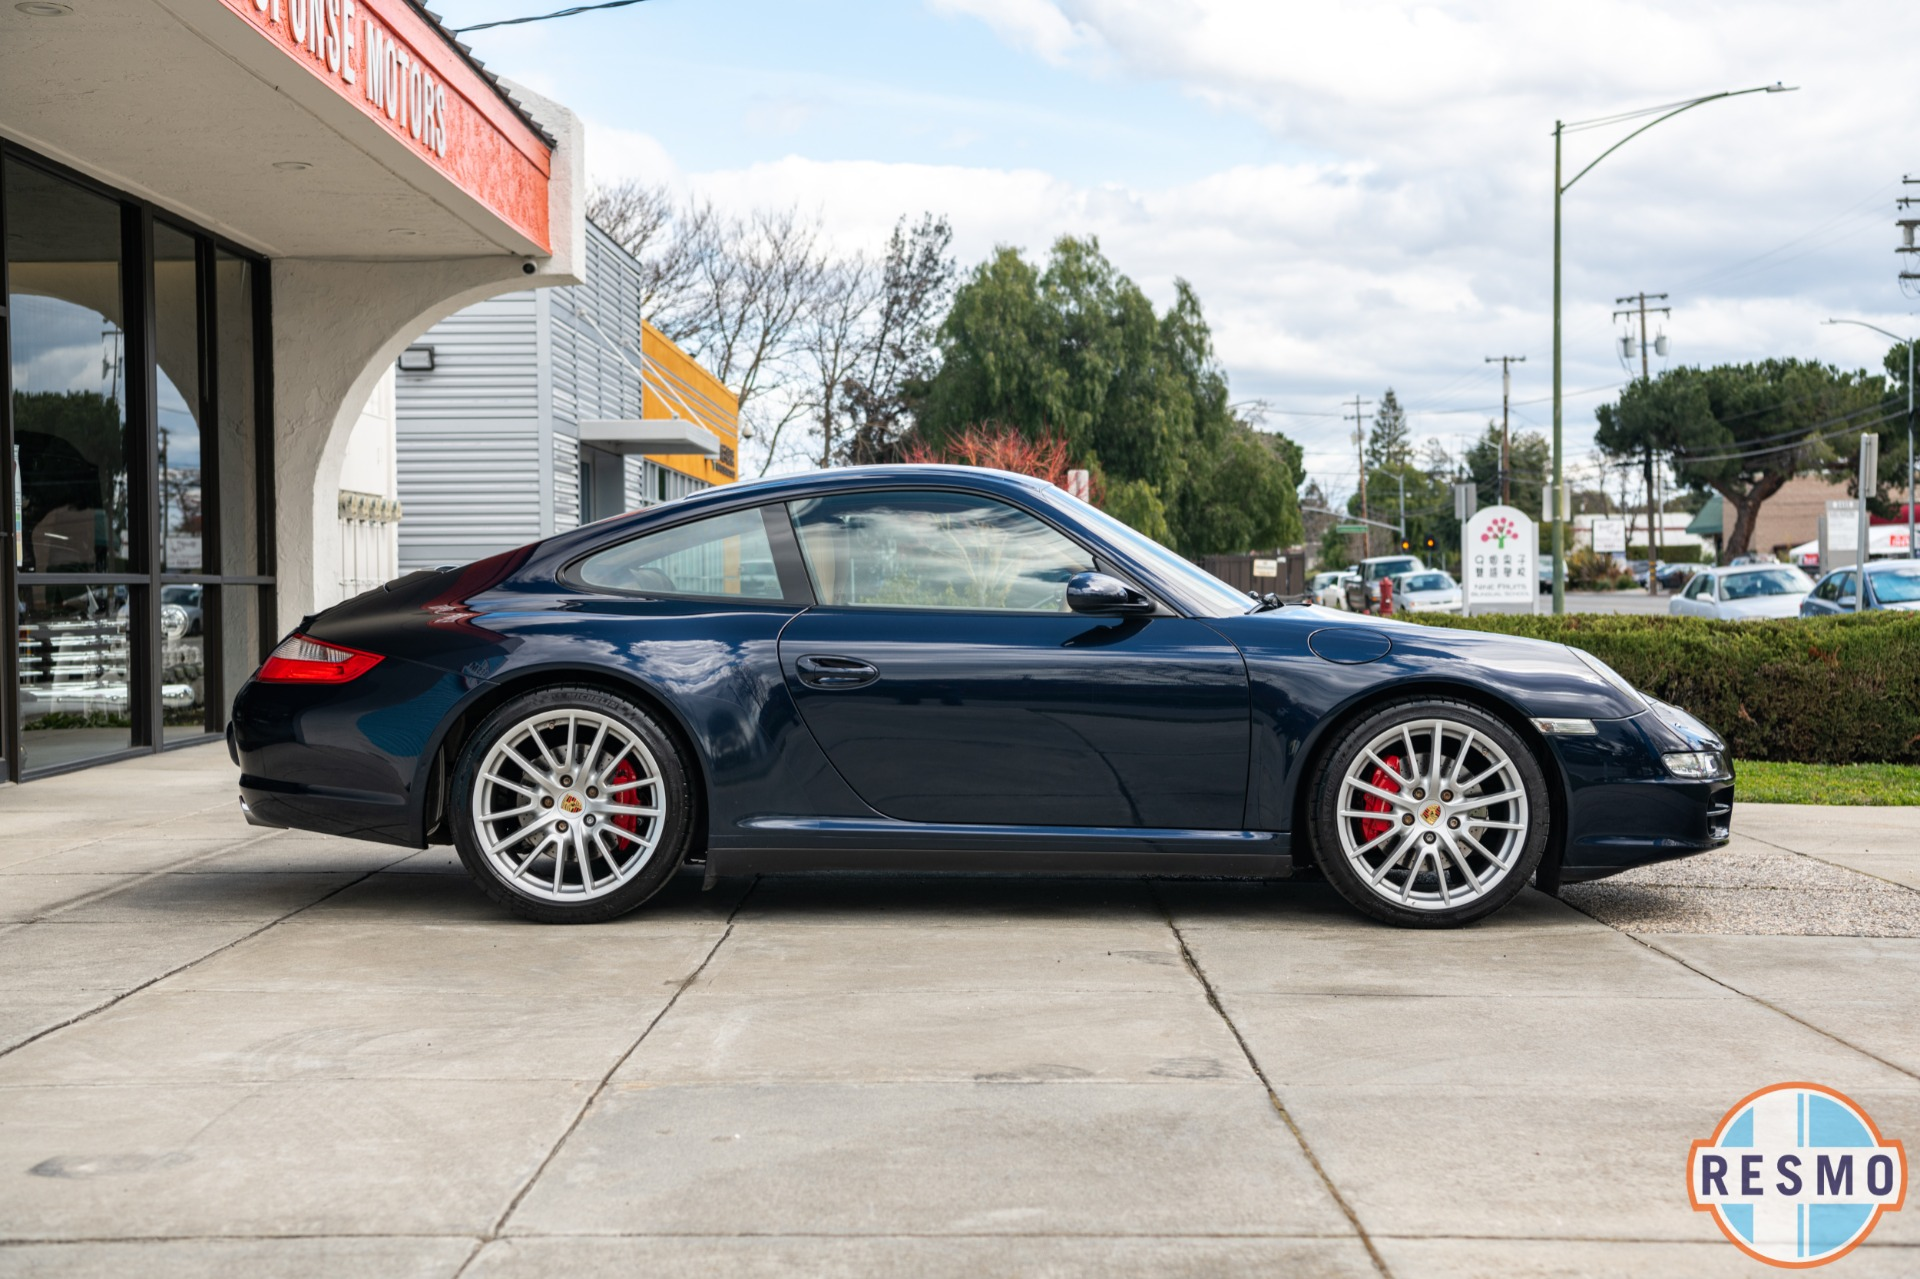 Used 2008 Porsche 911 Carrera 4S Used 2008 Porsche 911 Carrera 4S for sale $41,999 at Response Motors in Mountain View CA 4